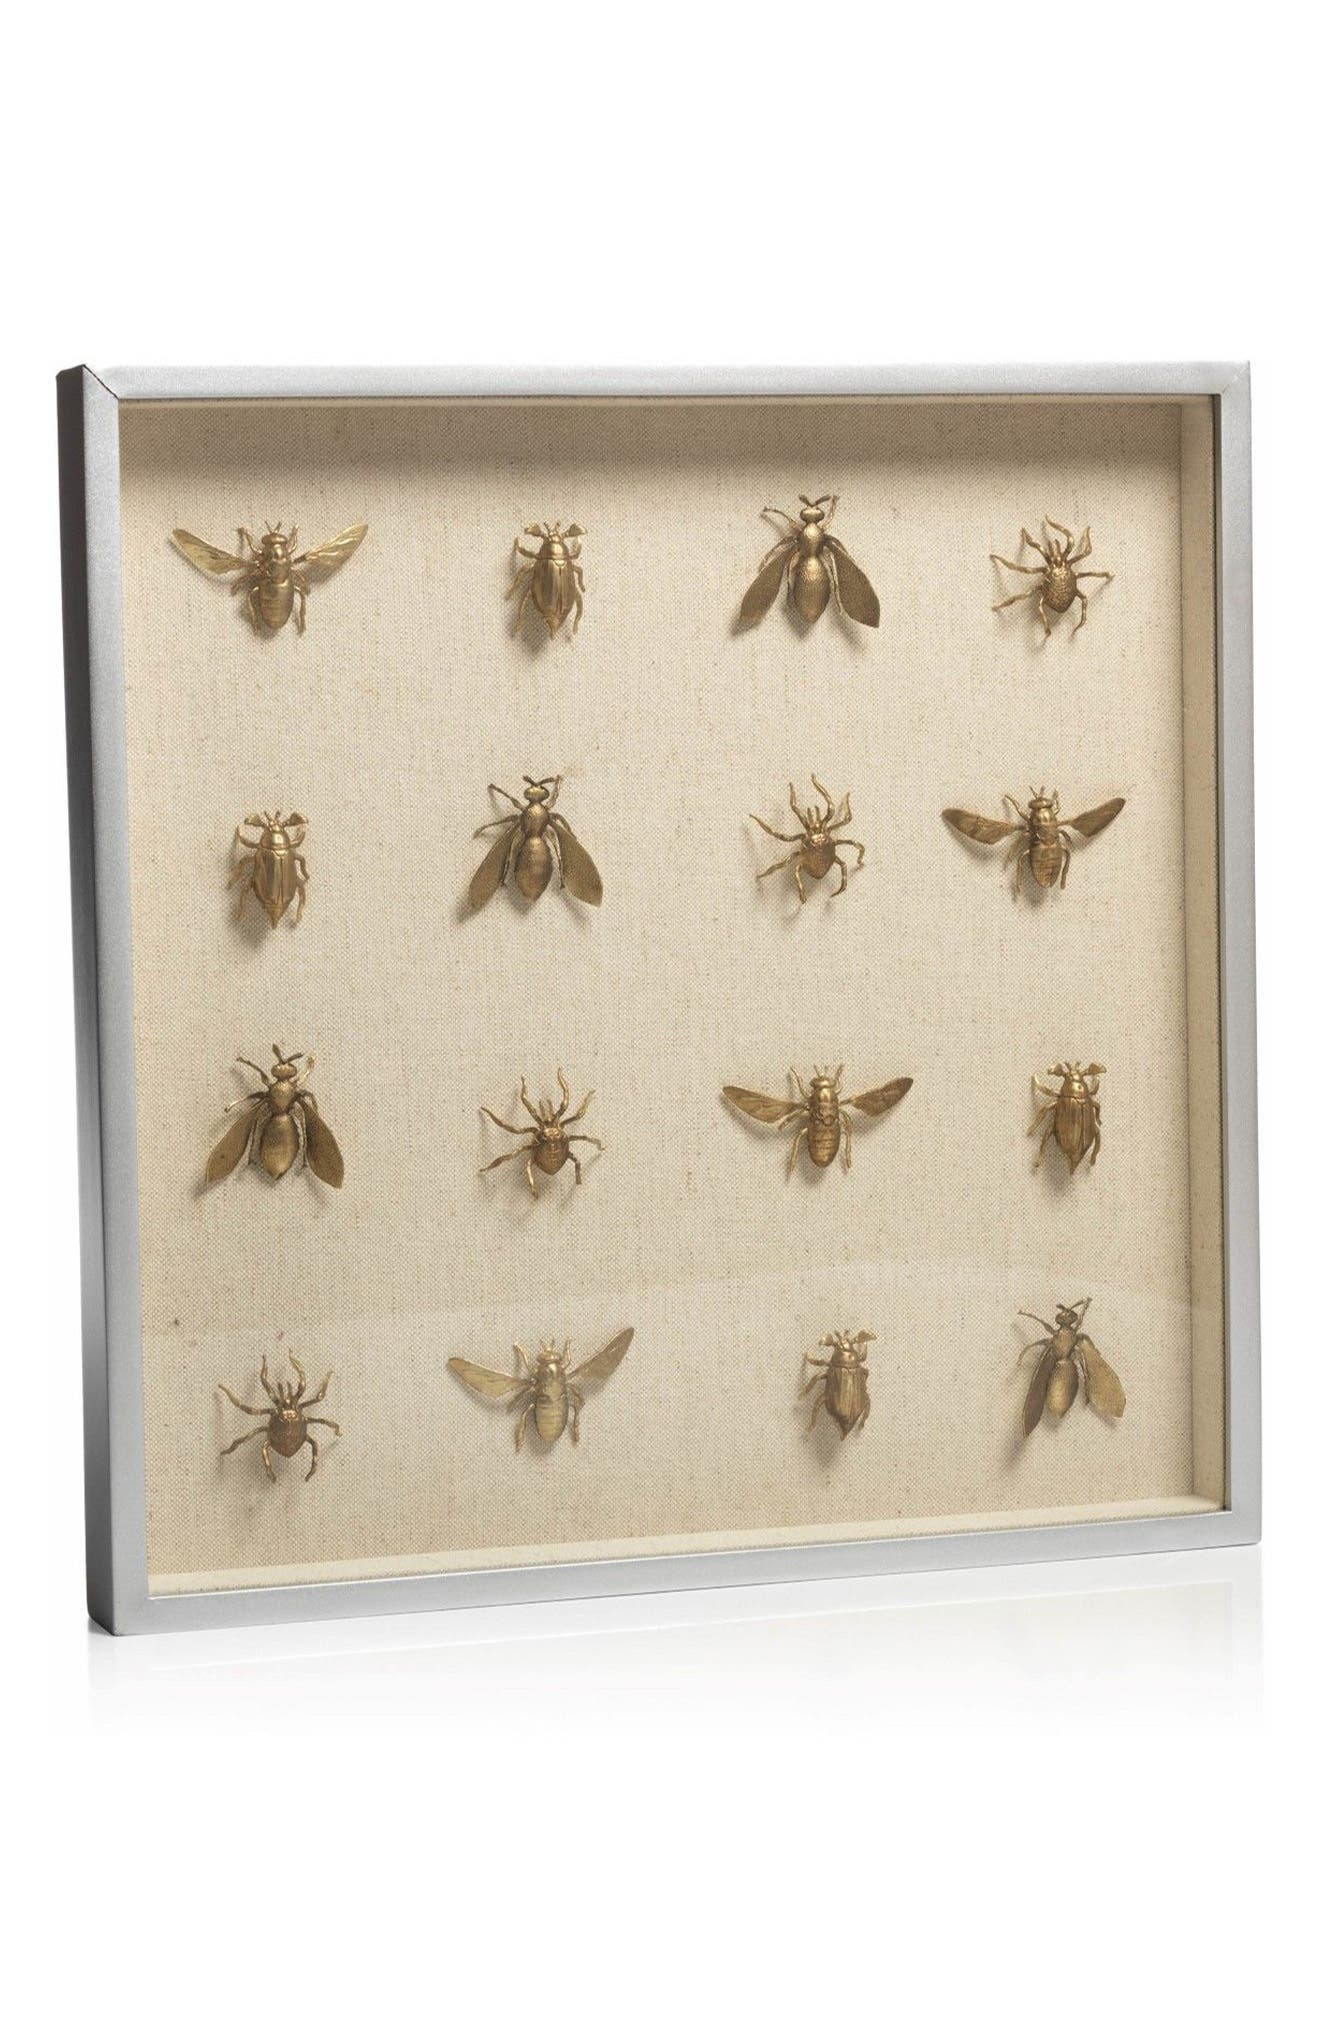 Insect Shadow Box Art,                             Main thumbnail 1, color,                             Off-White/ Gold/ Beige